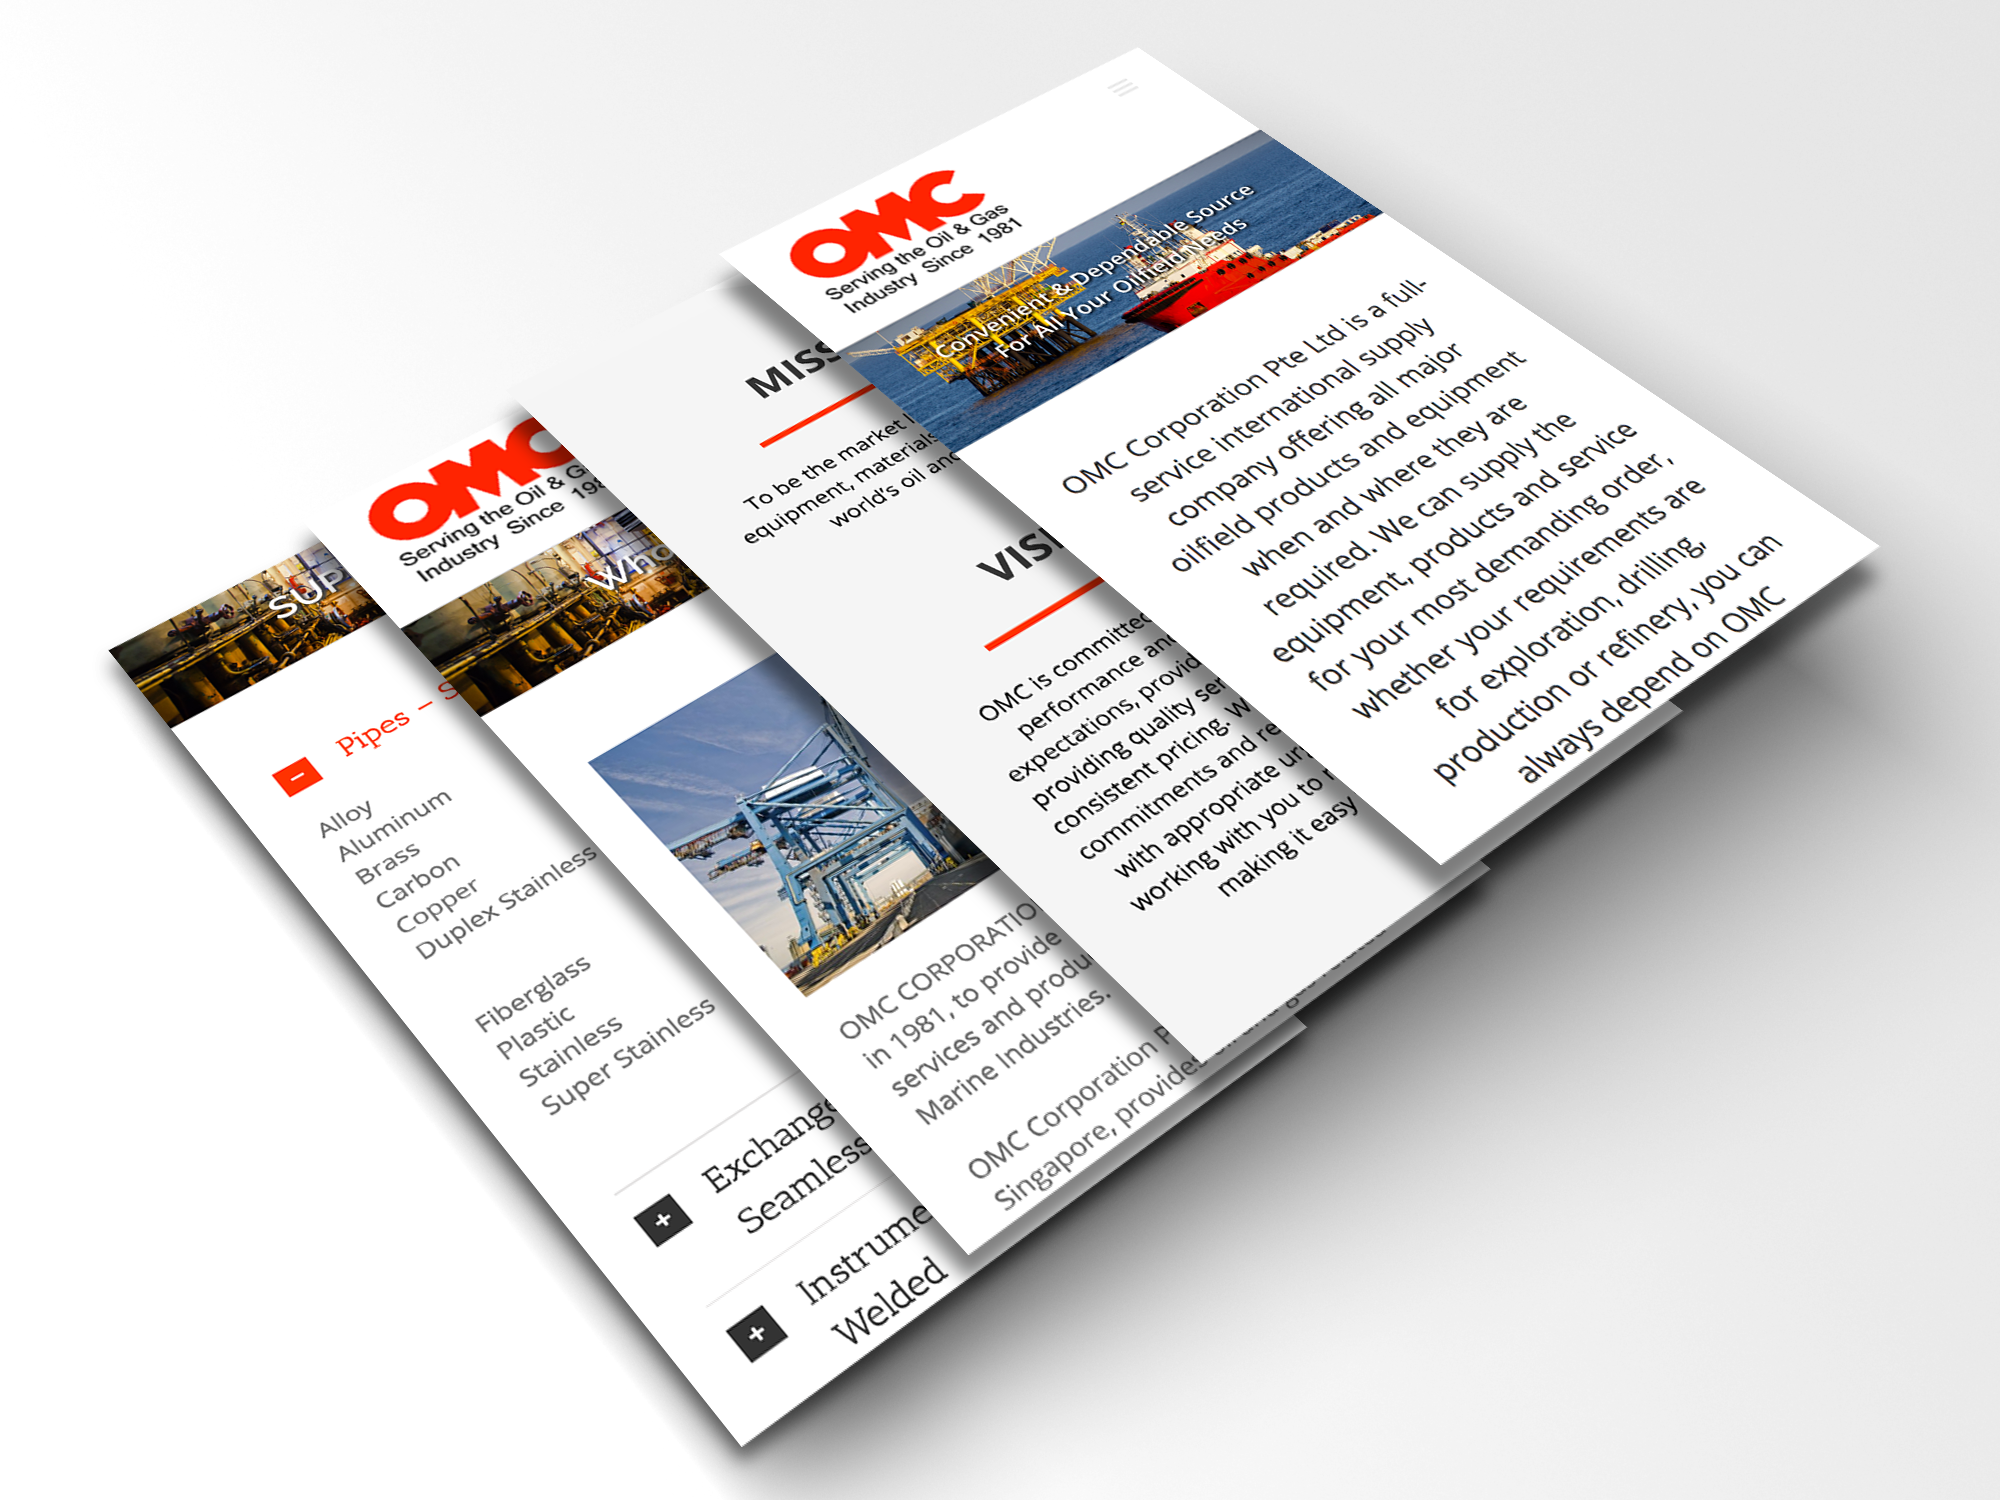 omc corp mobile ui web design